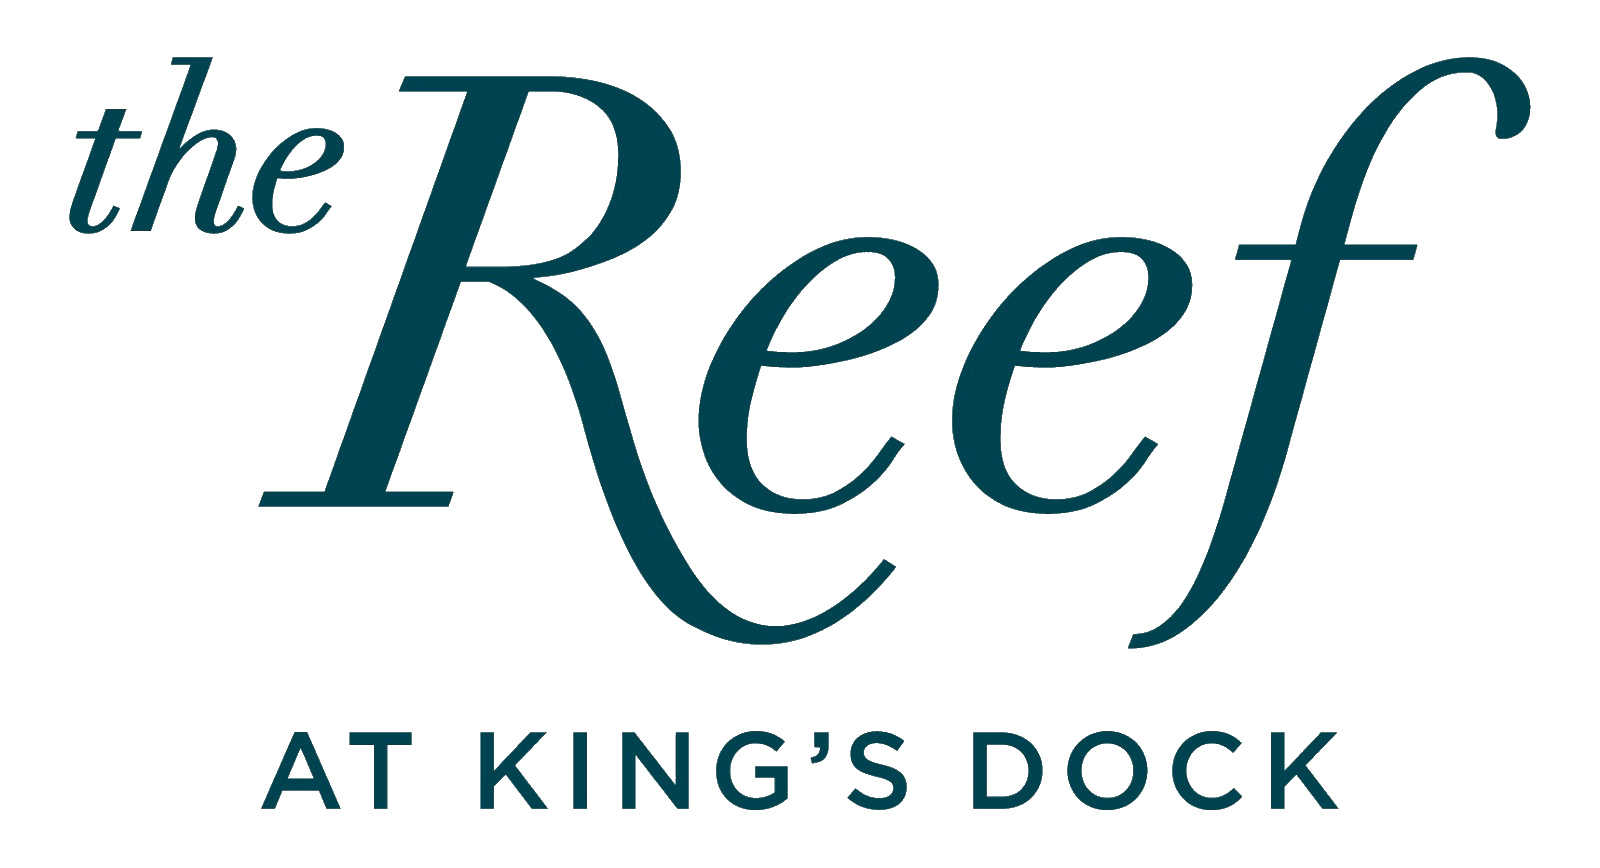 The Reef at King's Dock - Keppel Land